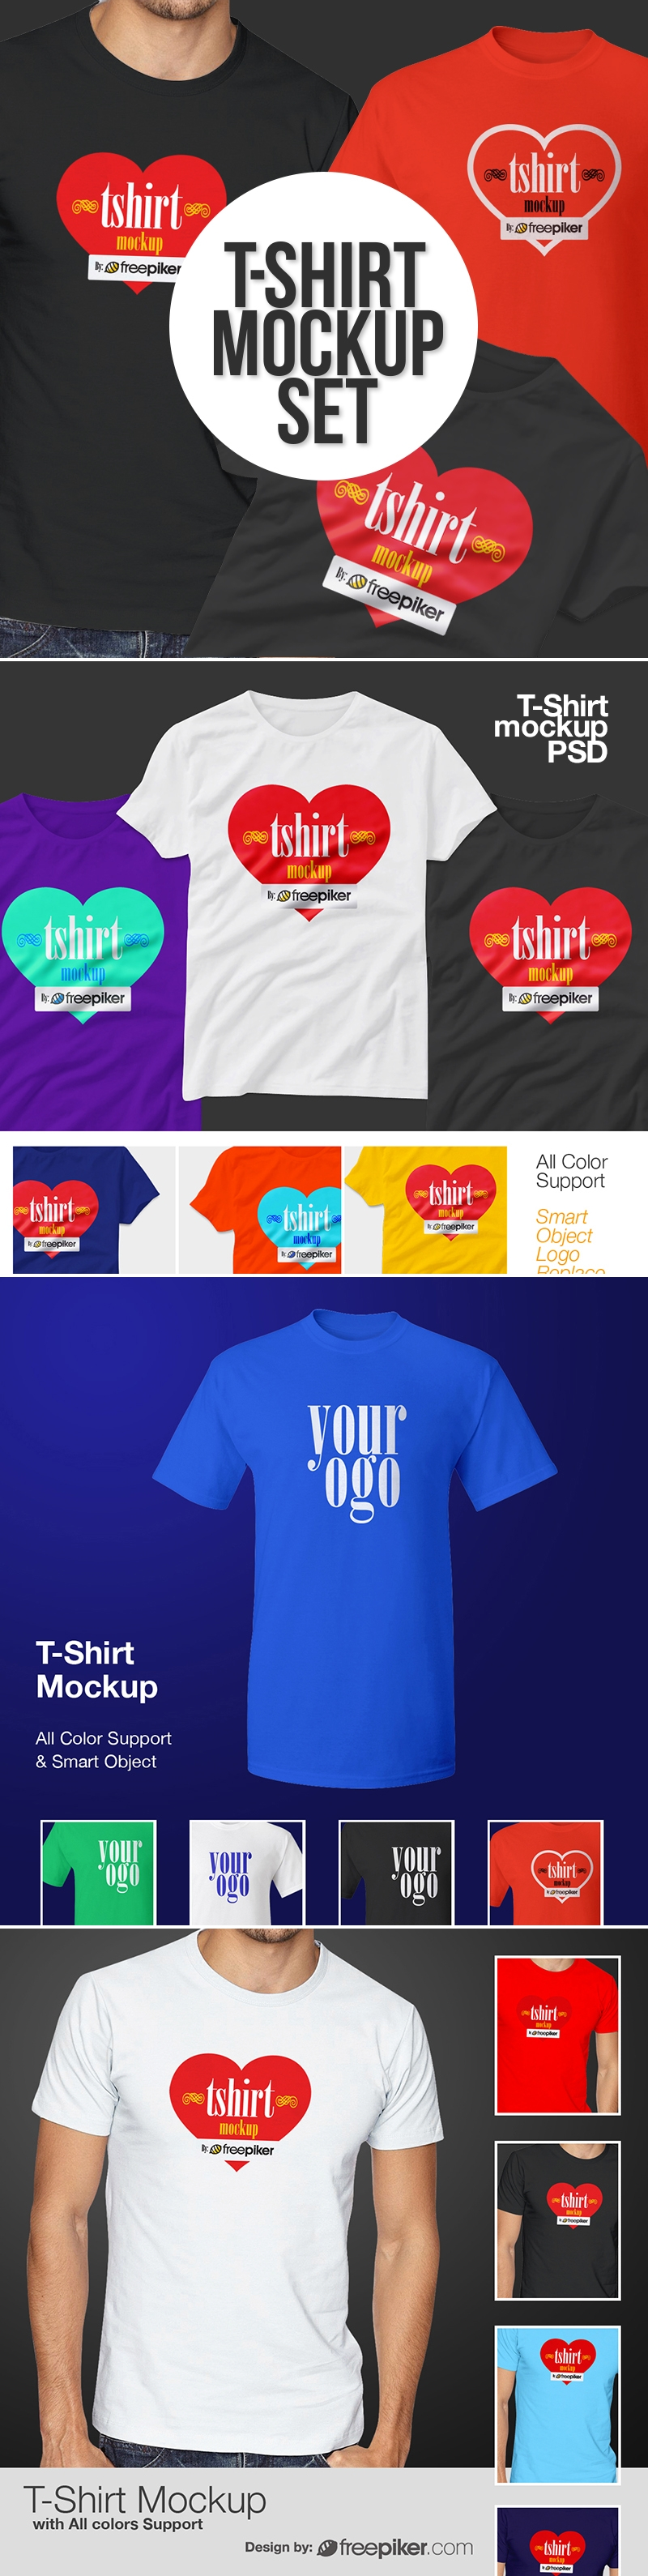 T Shirt Mockup PSD Graphics Pack